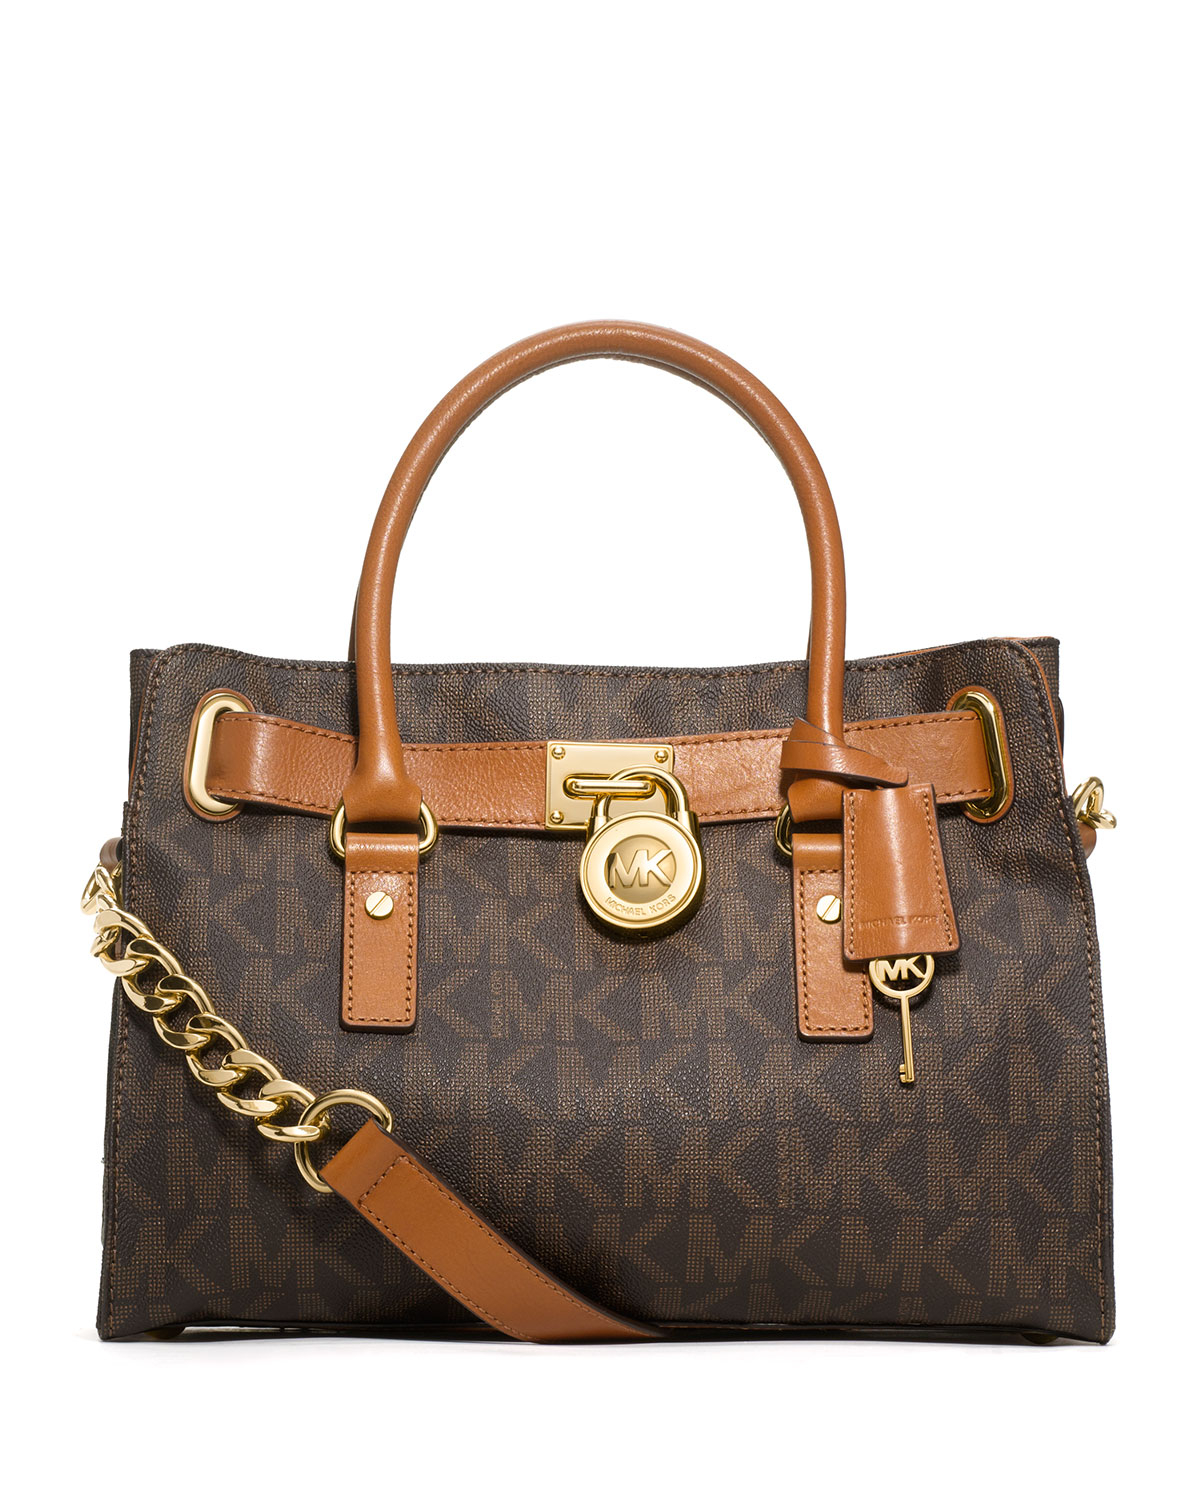 7cb607b3170028 Gallery. Previously sold at: Neiman Marcus · Women's Michael By Michael  Kors Hamilton